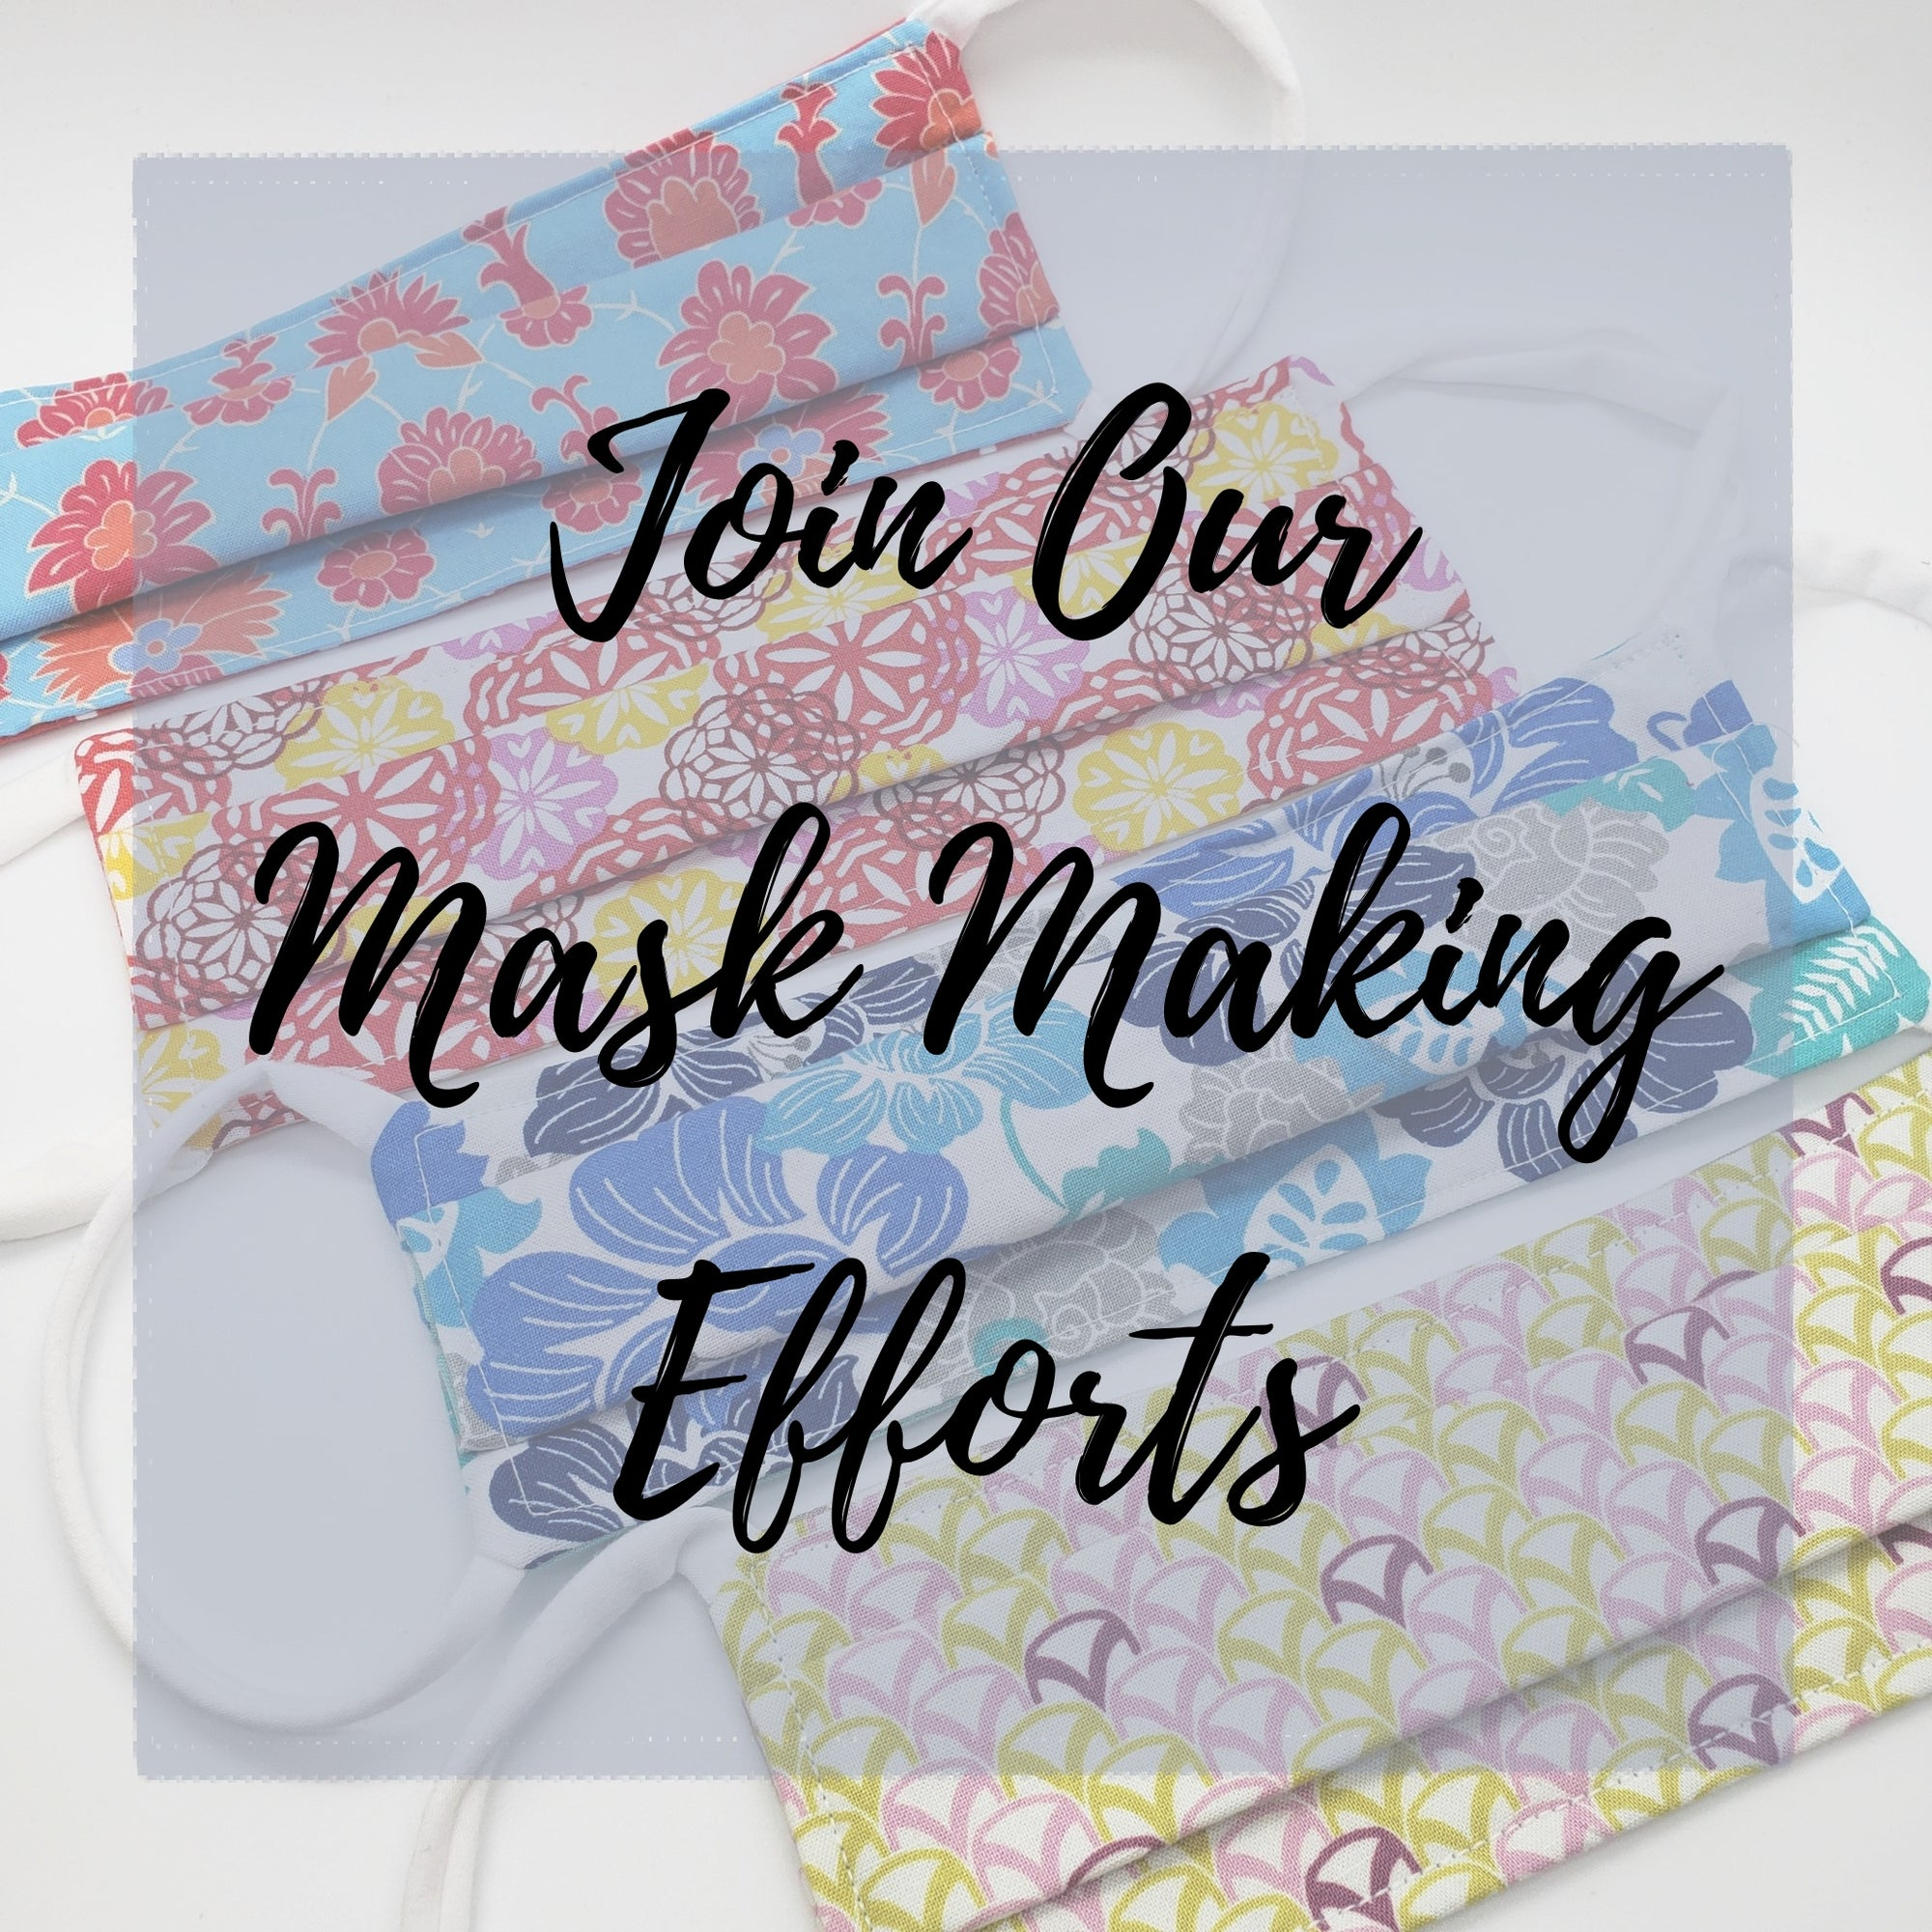 Join Our Mask Making Efforts